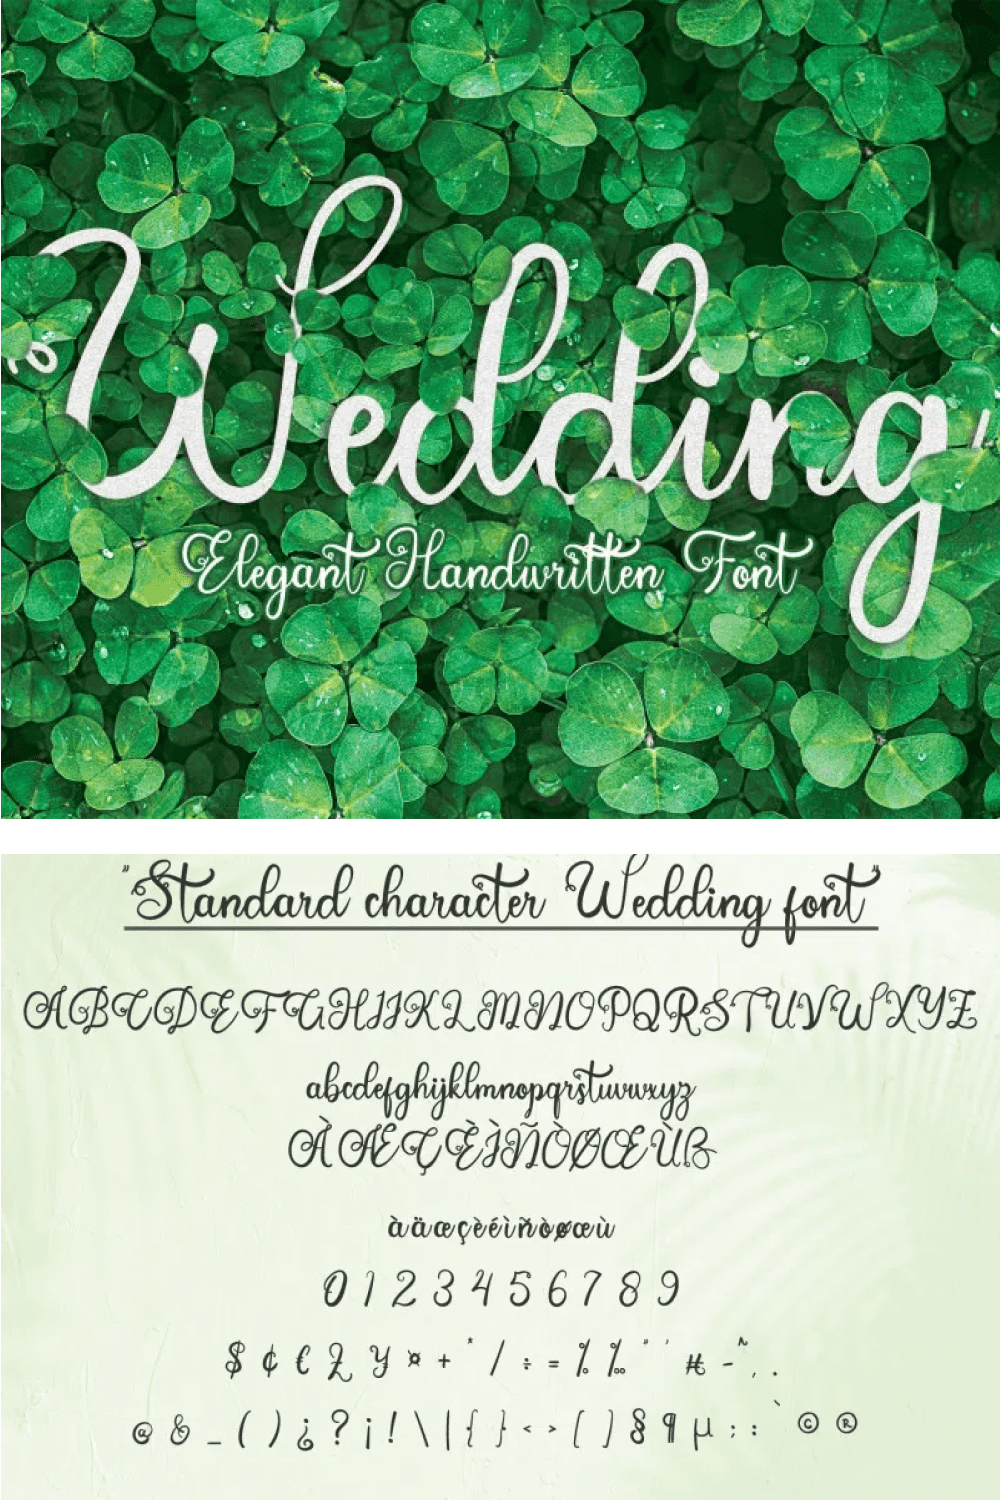 This is an exquisite, lovely and flowing handwritten font.